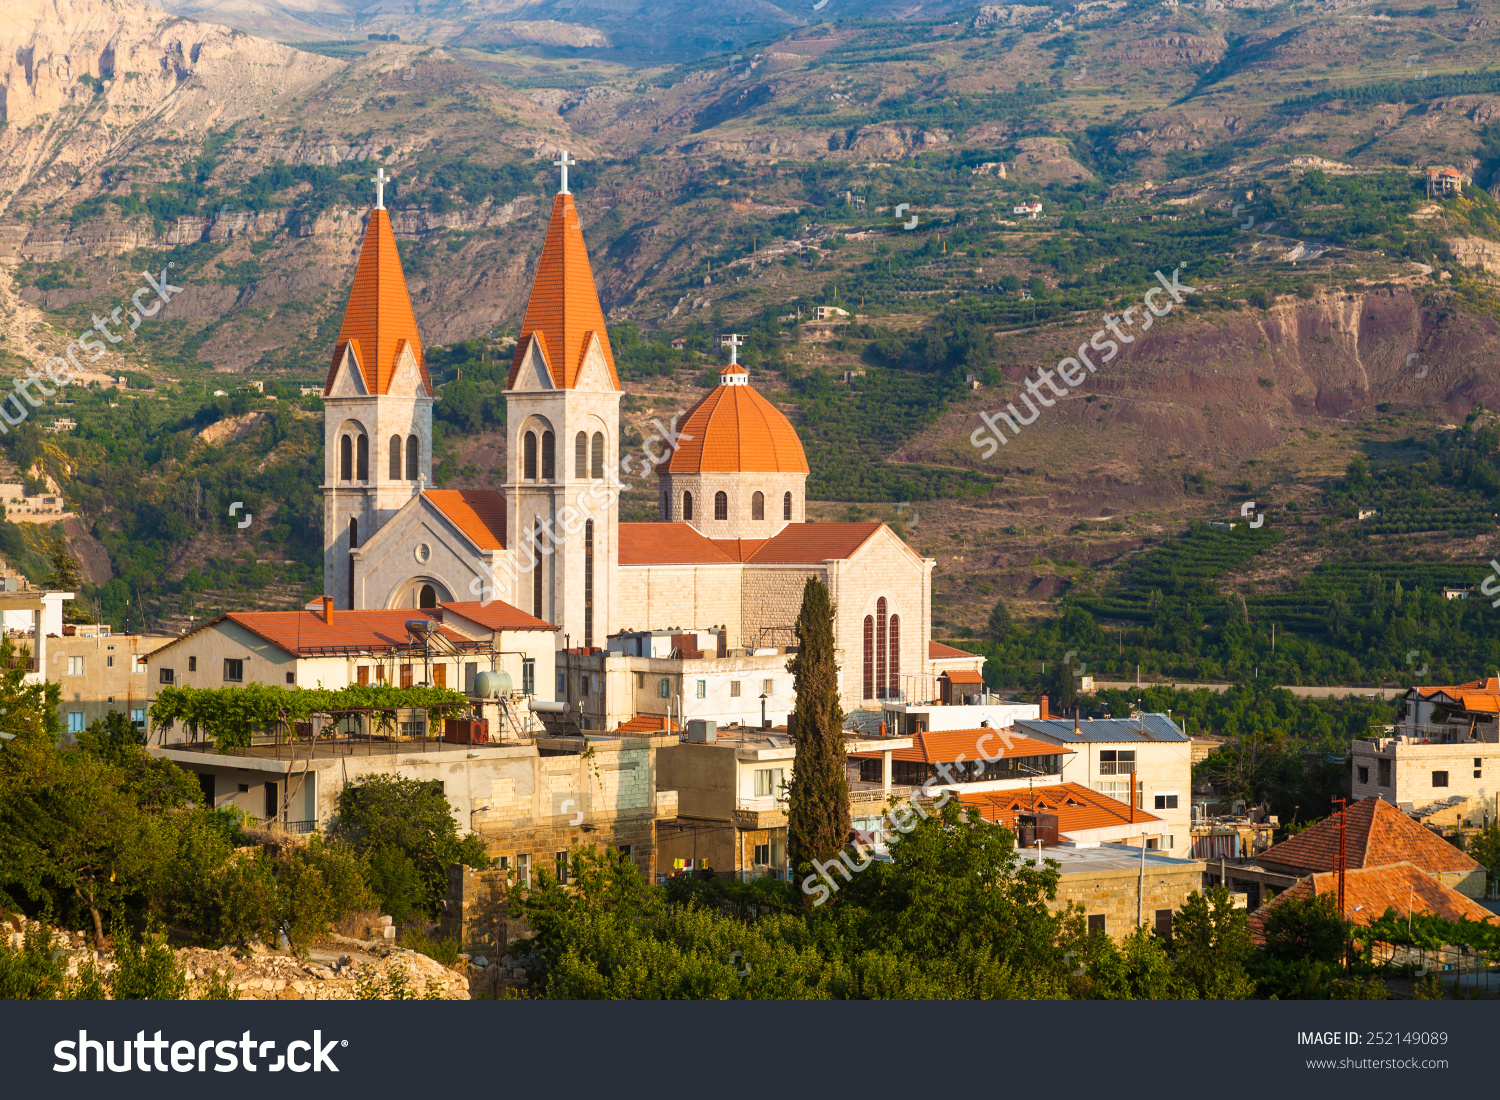 Beautiful Church Bsharri City Lebanon Beautiful Stock Photo.